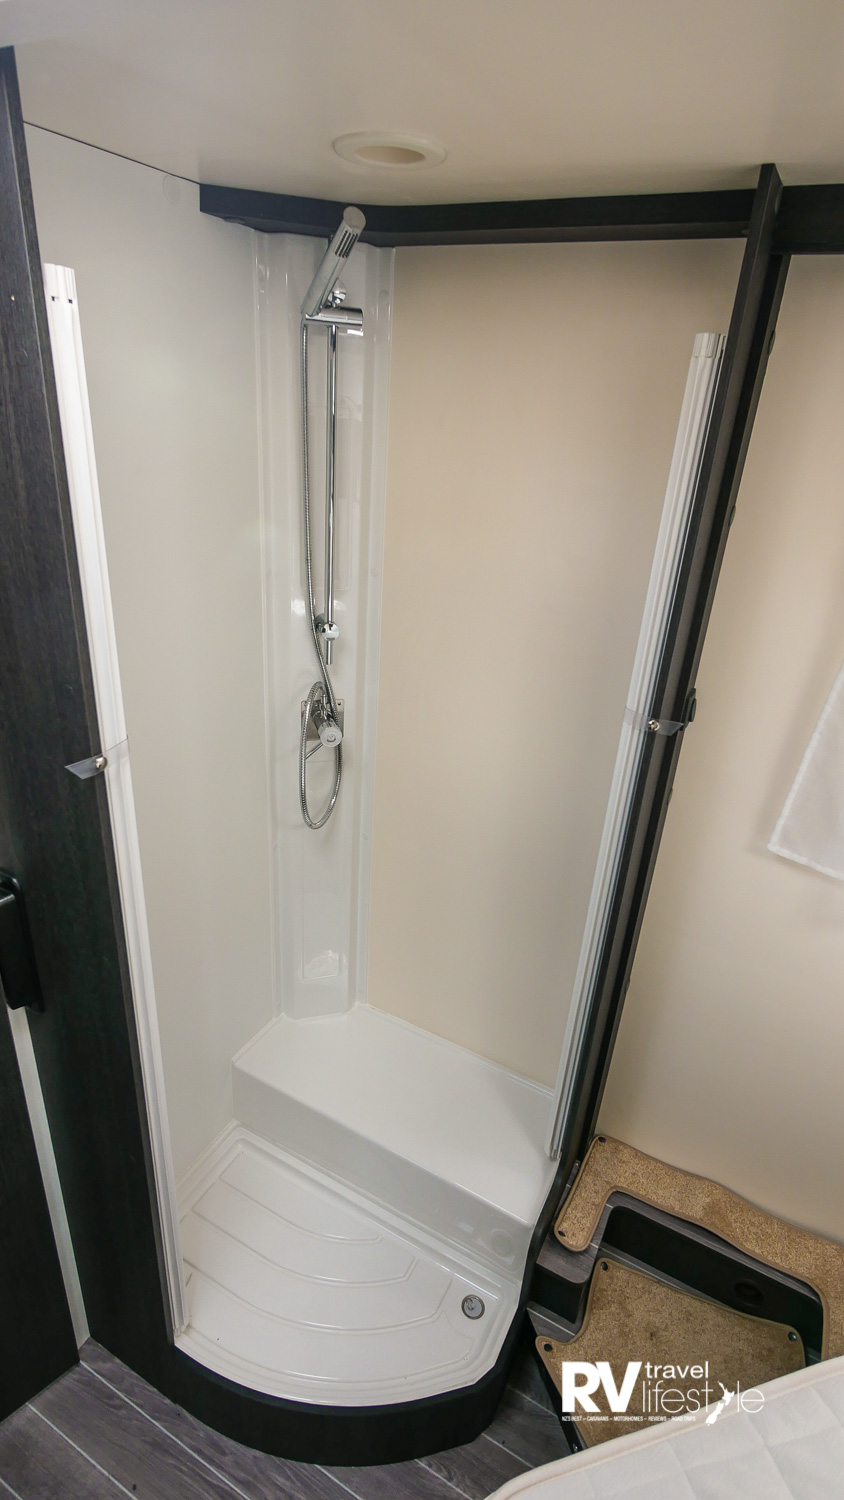 Full-height shower on the left wall at entry to bedroom